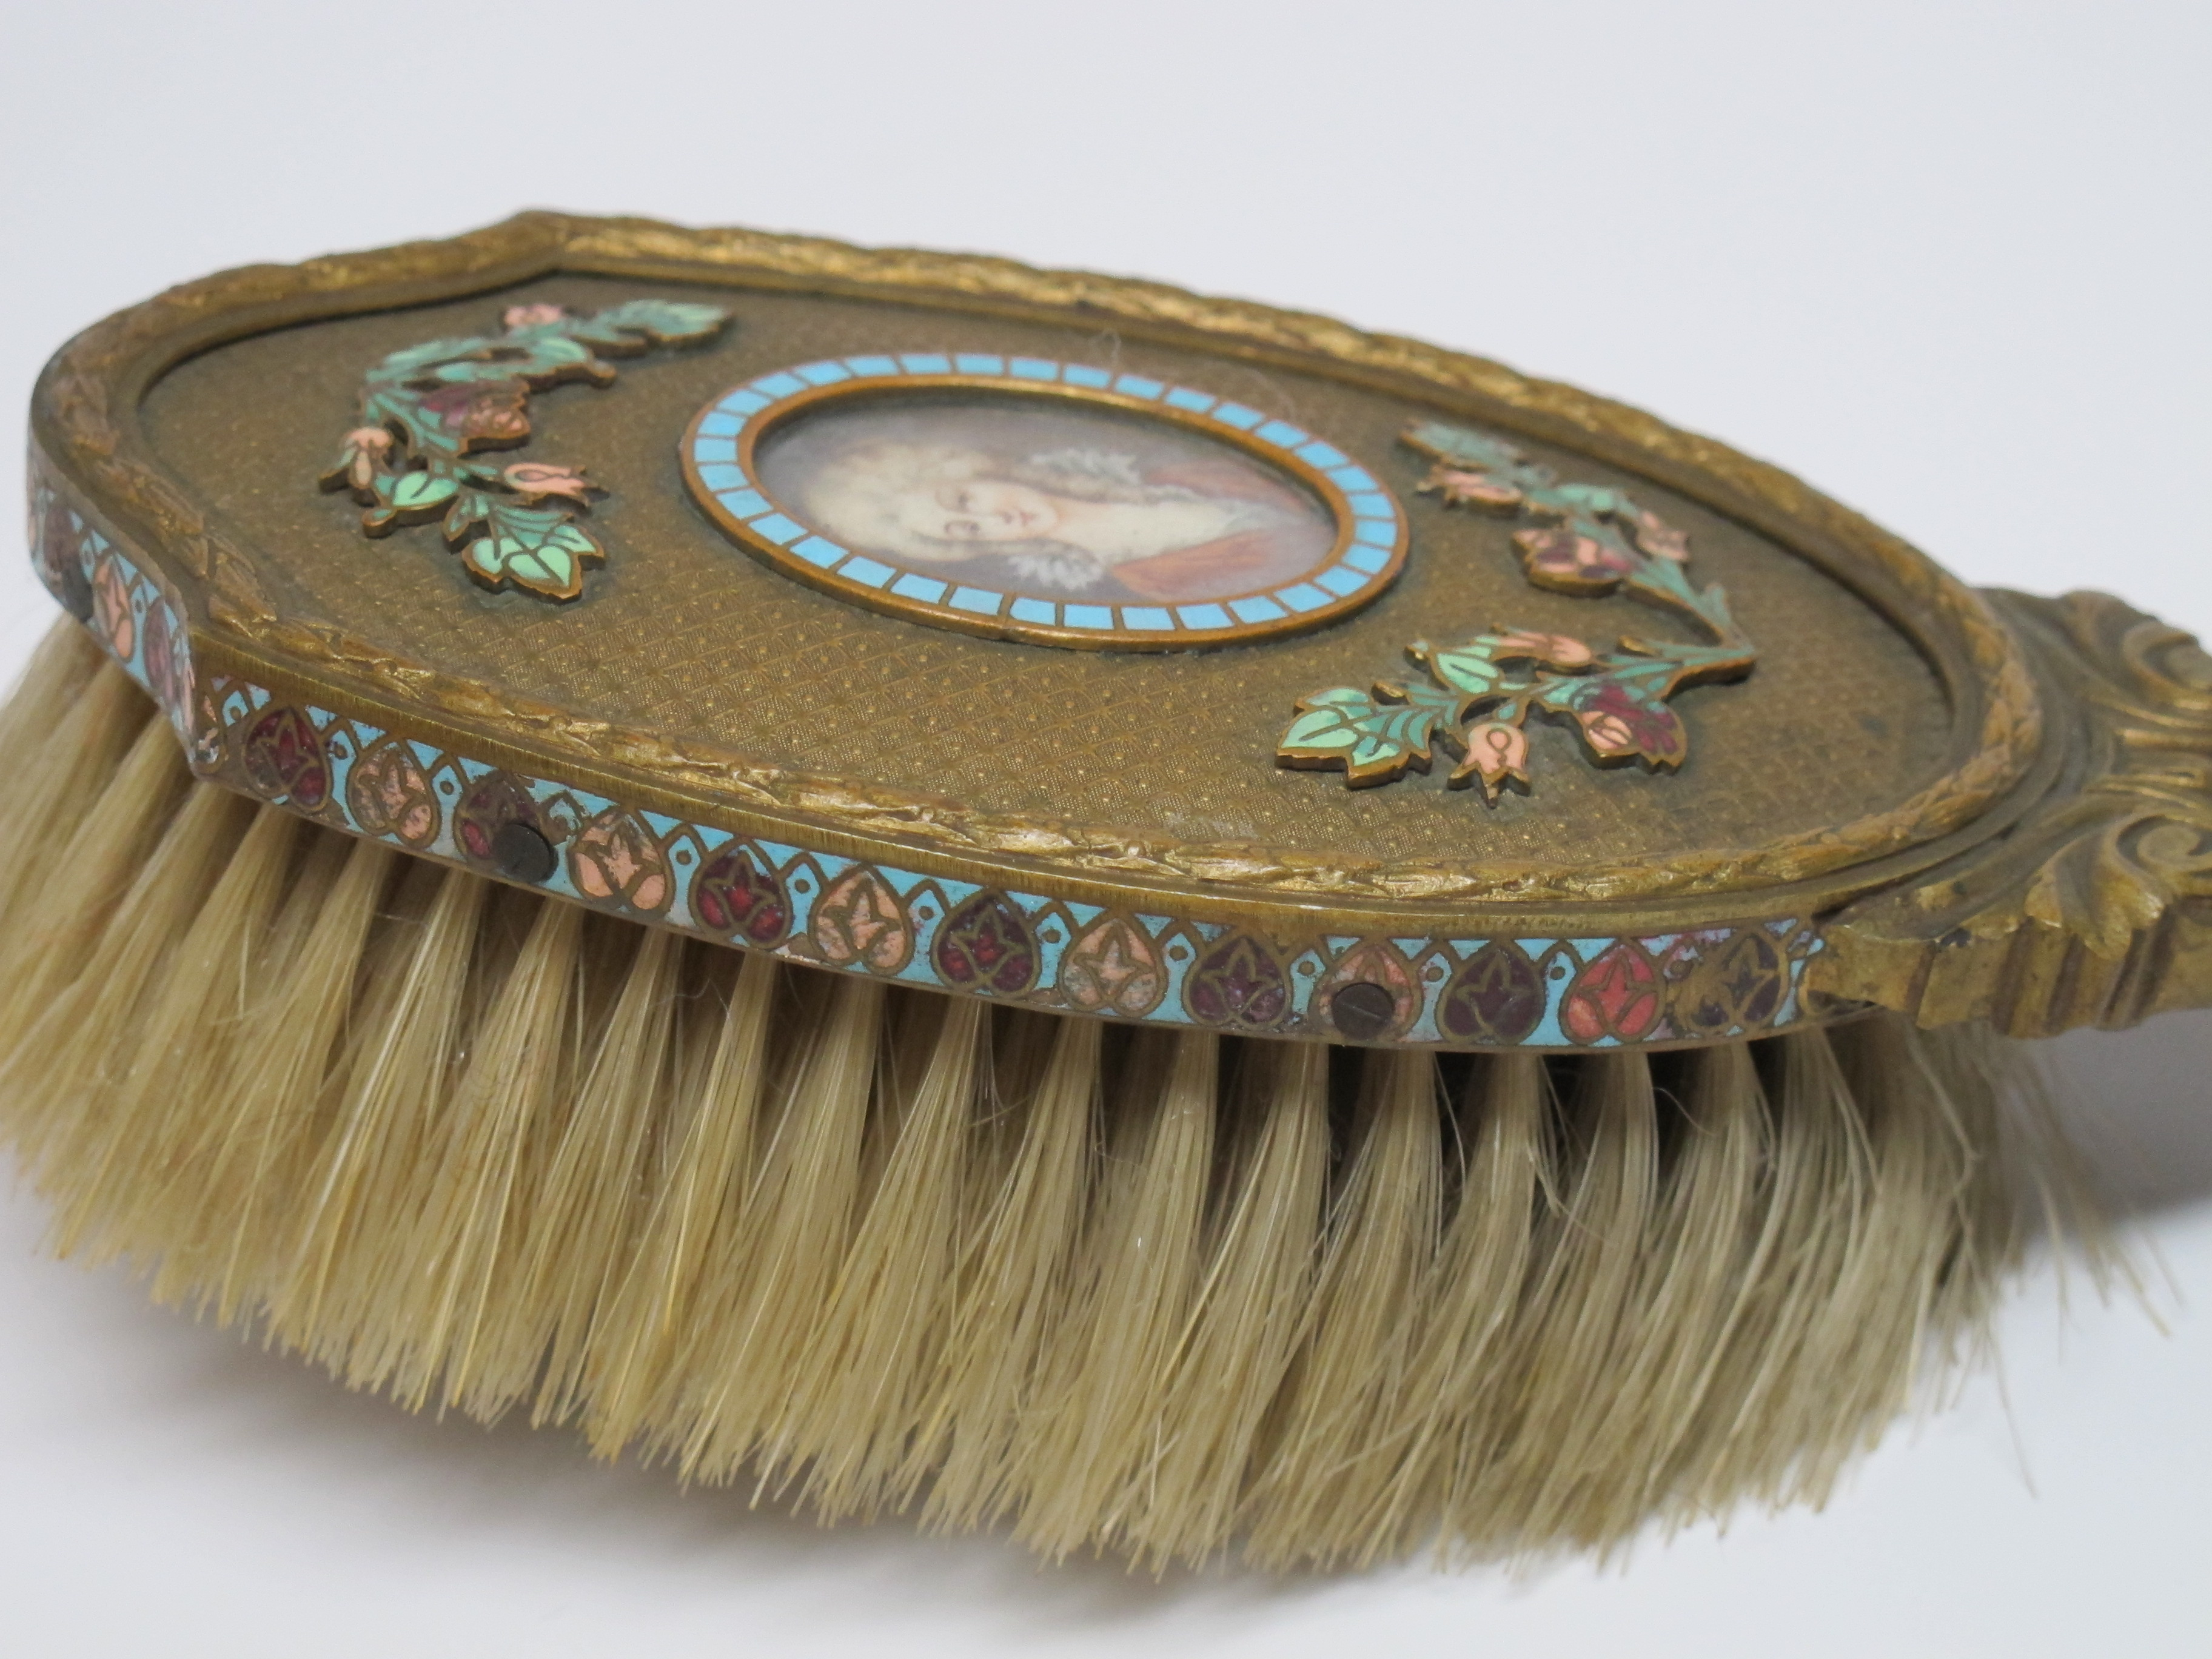 Old fashioned hair brush